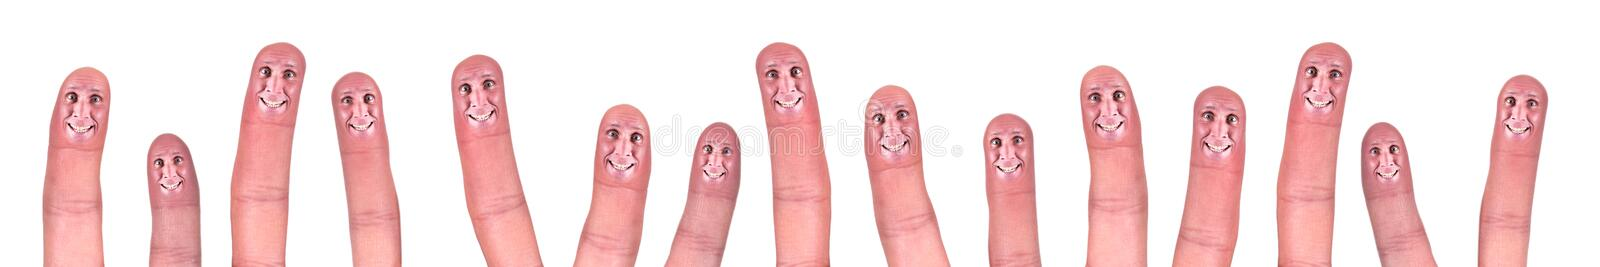 Download Business Teamwork Concept Happy Smiling Fingers Stock Image - Image: 23102751